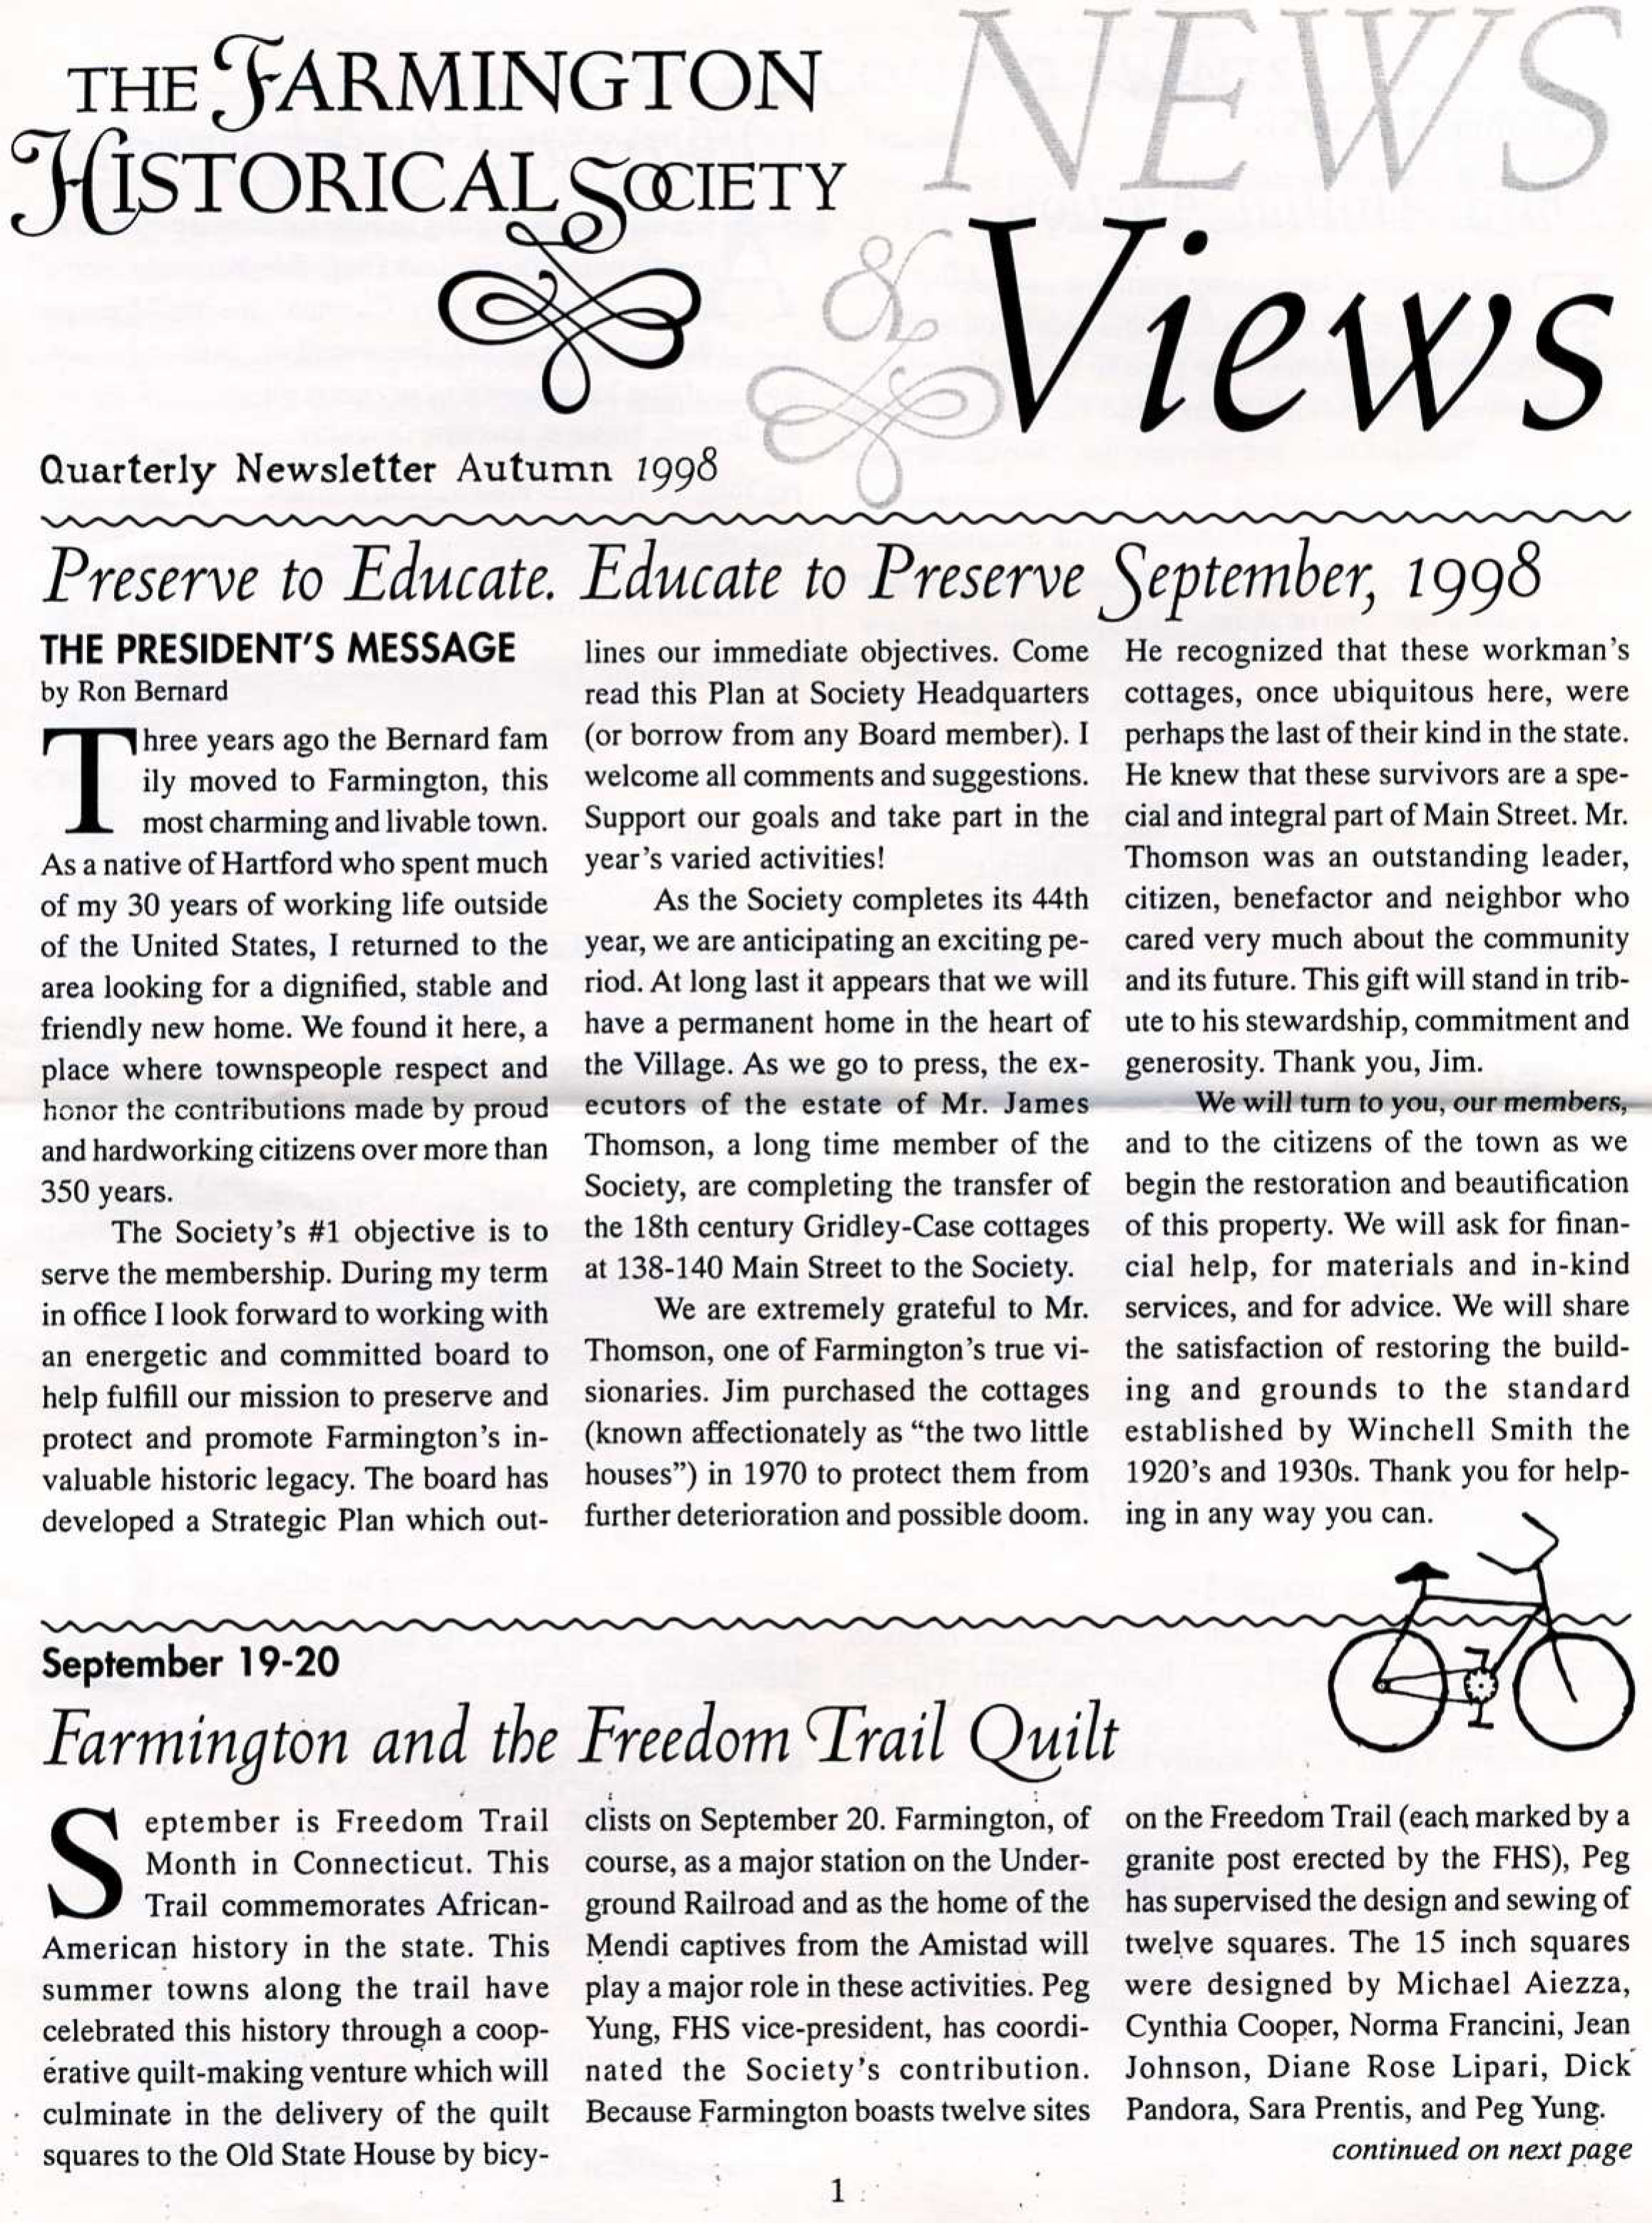 http://fhs-ct.org/1998/10/10/autumn-1998-newletter/